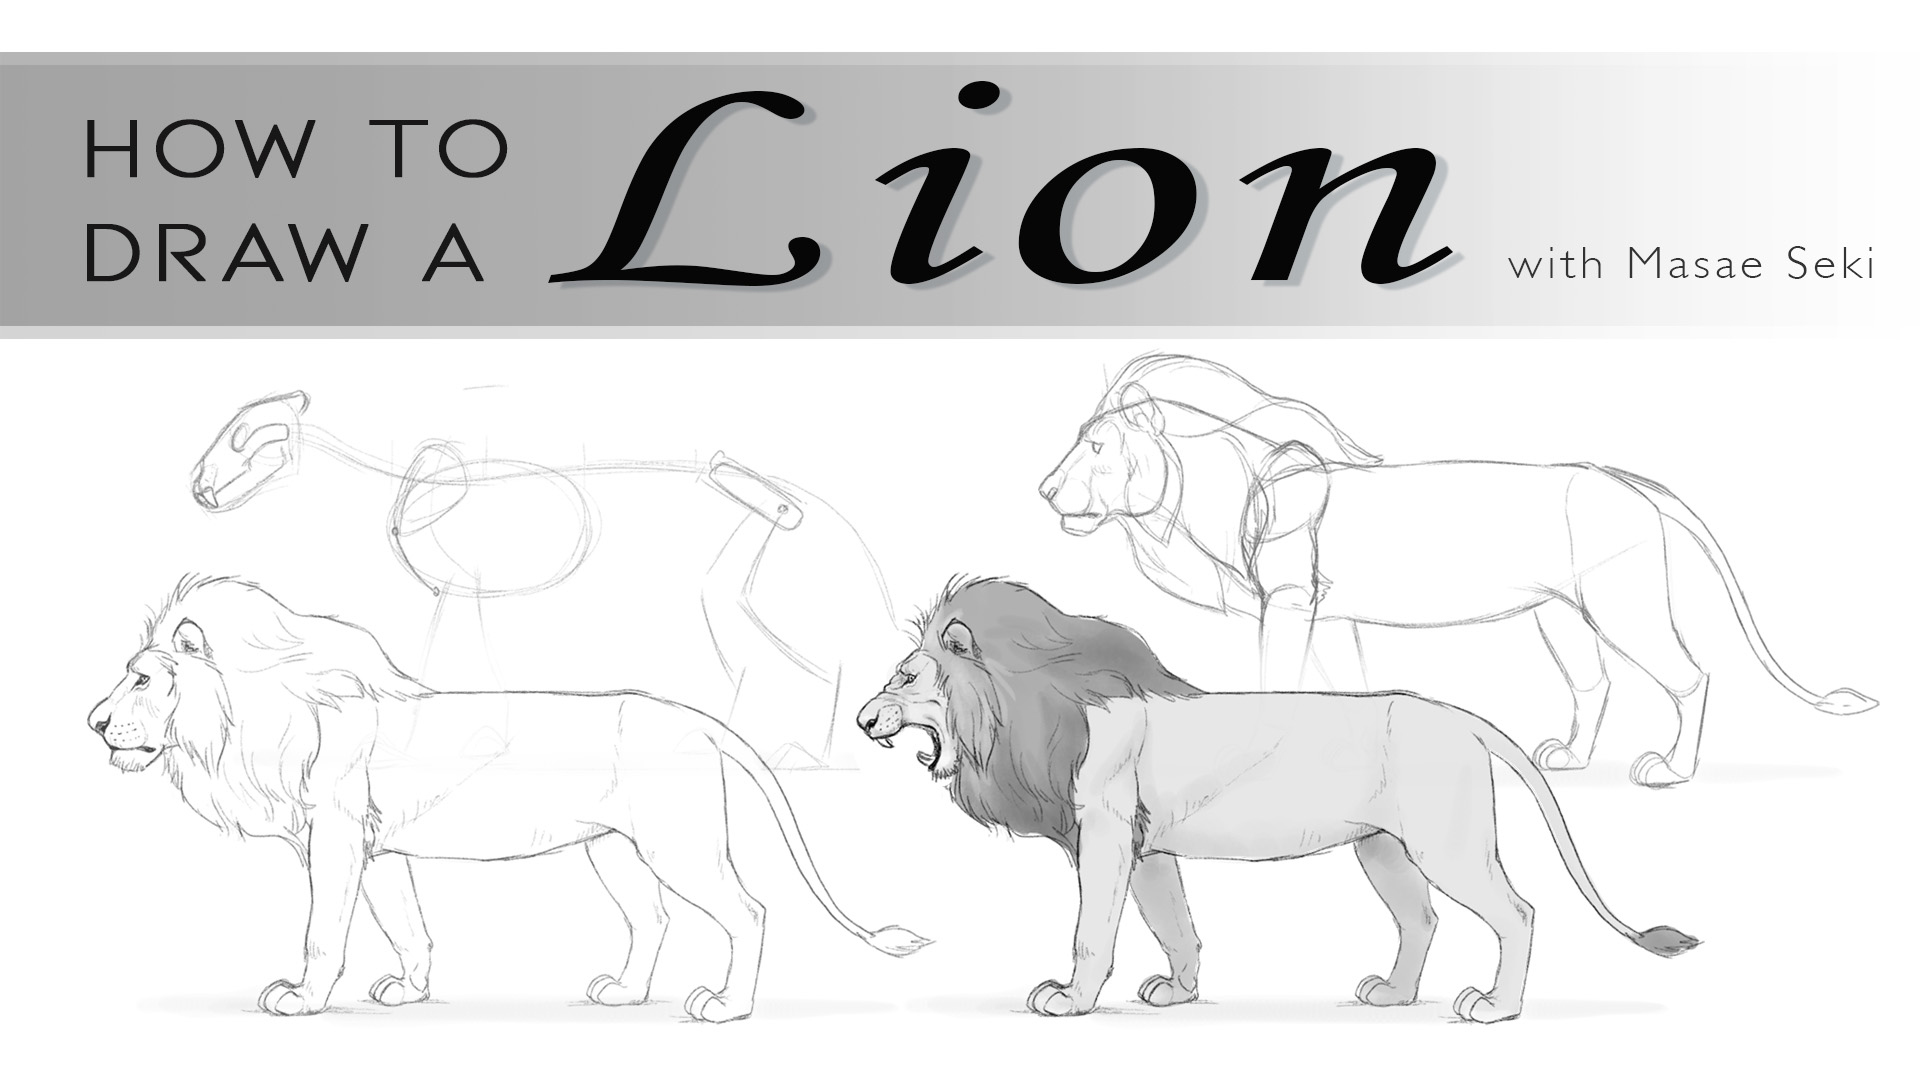 How To Draw A Lion Creative Bloq Lion outline drawing at getdrawings. how to draw a lion creative bloq